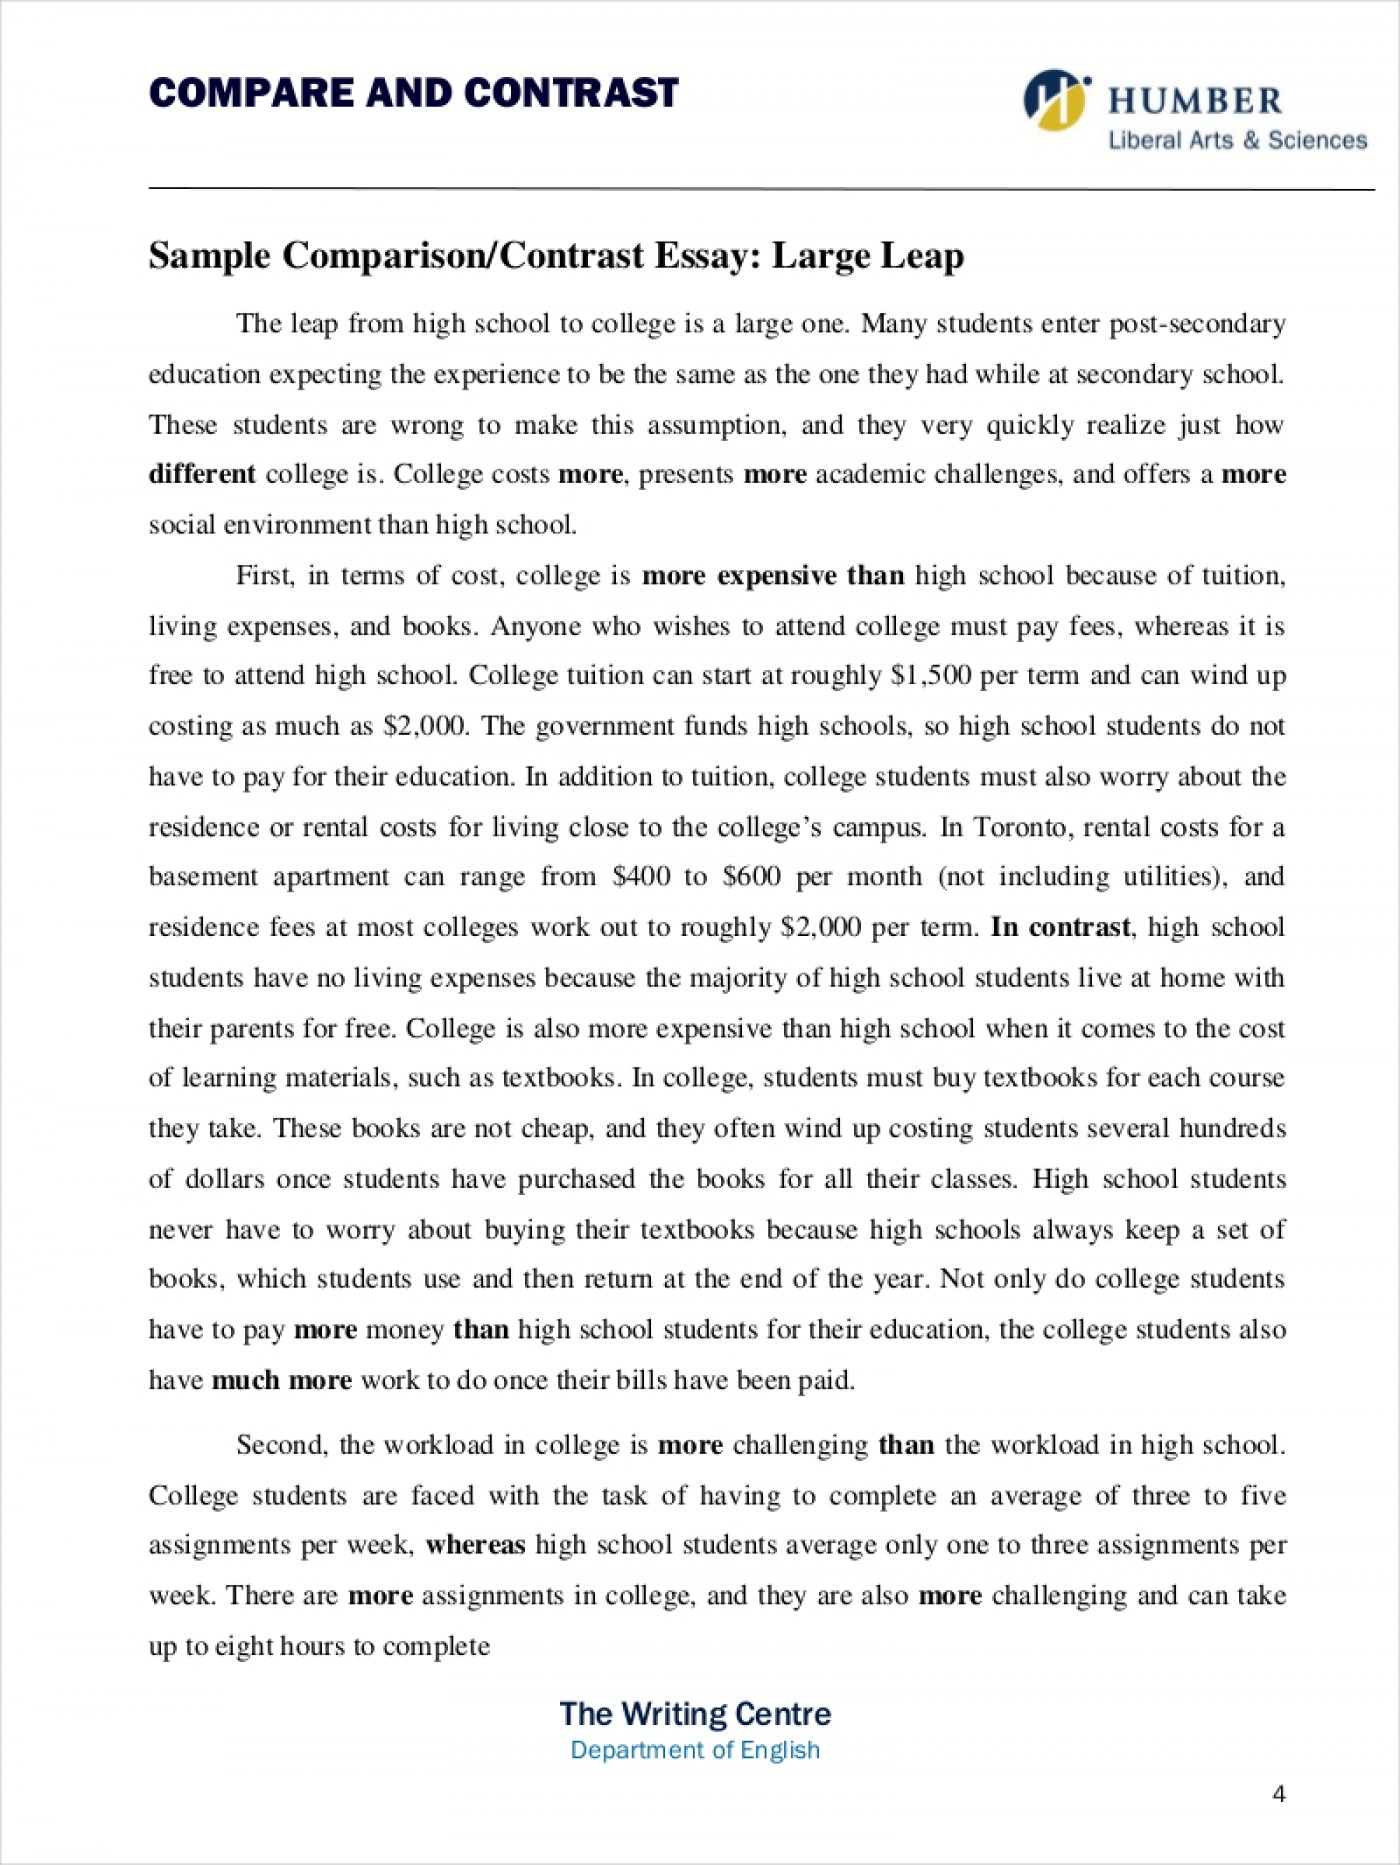 006 Compare And Contrast Essay Examples Comparative Samples Free Pdf Format Download Throughout Comparison Thesis Coles Thecolossus Co Within Ex 5th Grade 4th 6th 3rd Magnificent 9th For Elementary Students Topics 1400